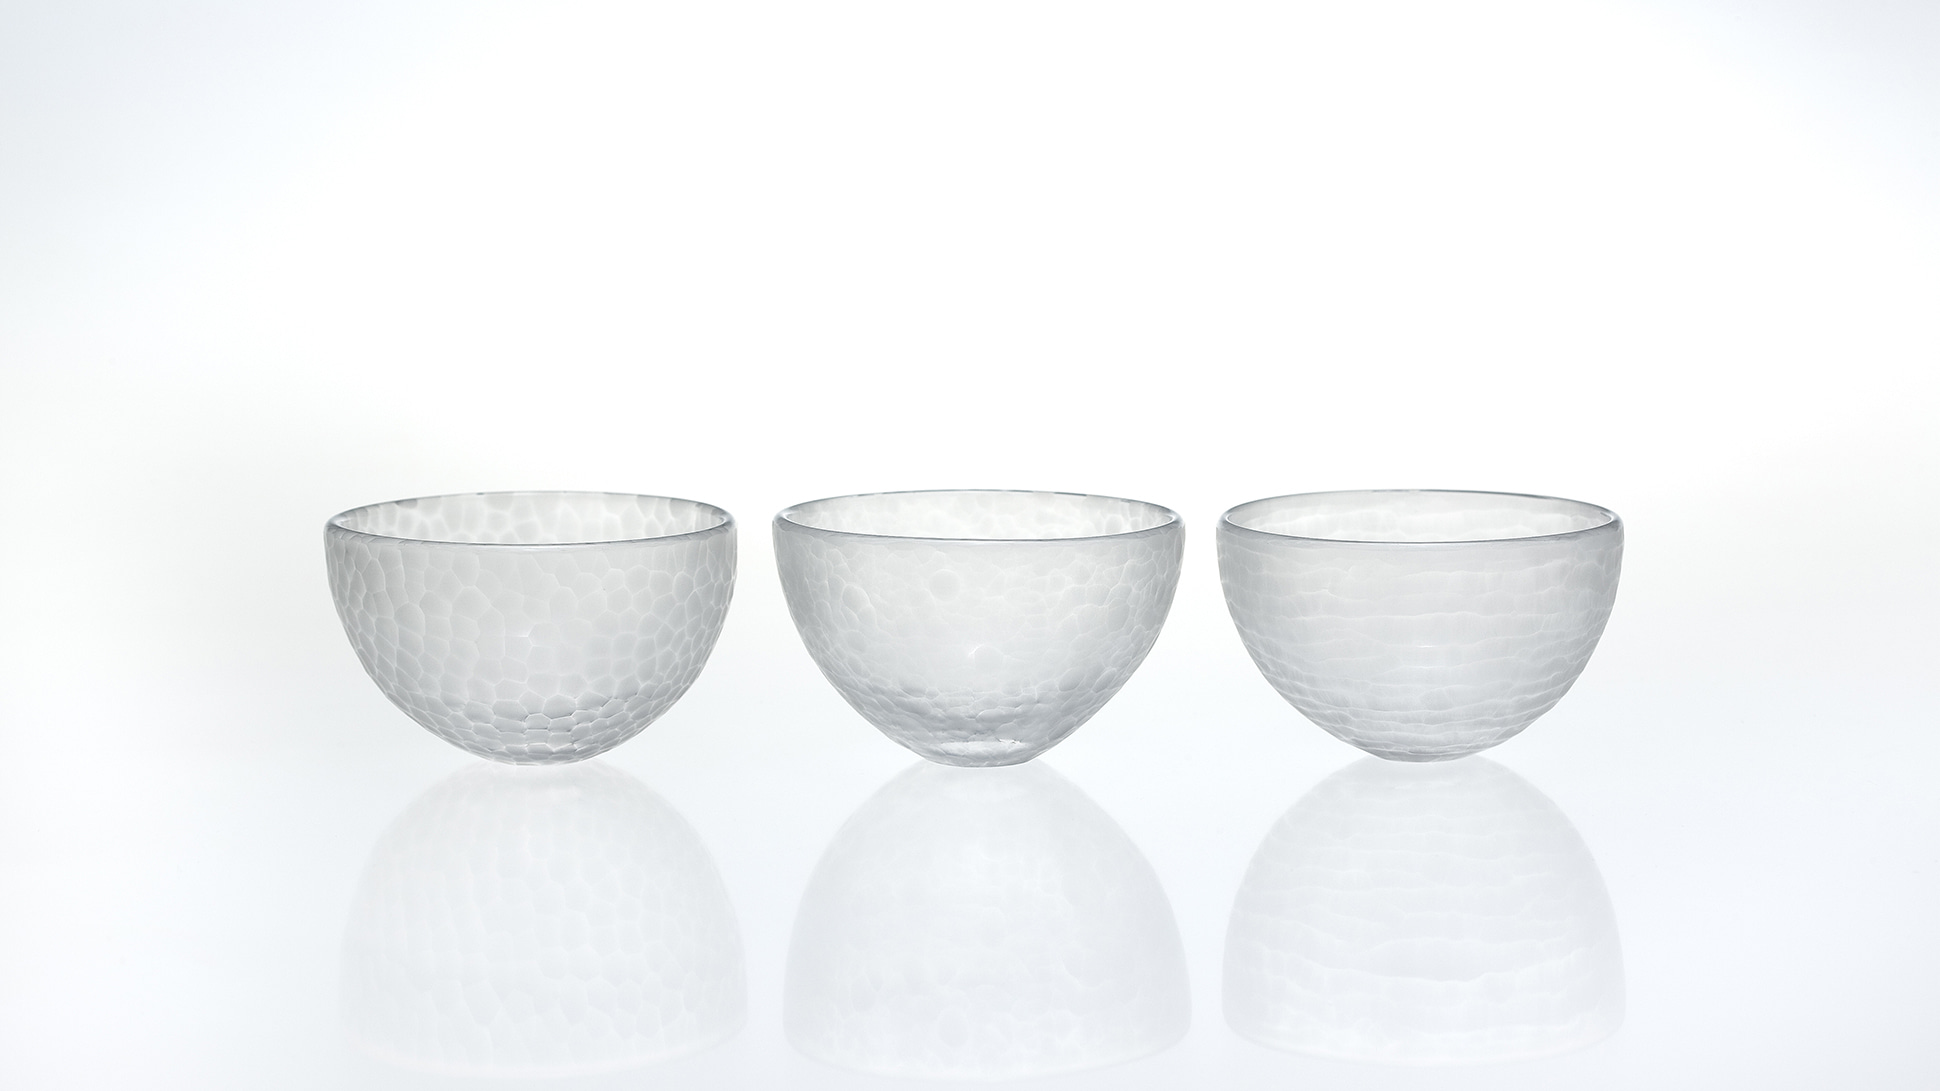 Jung,jung-hoon's Glass Tableware